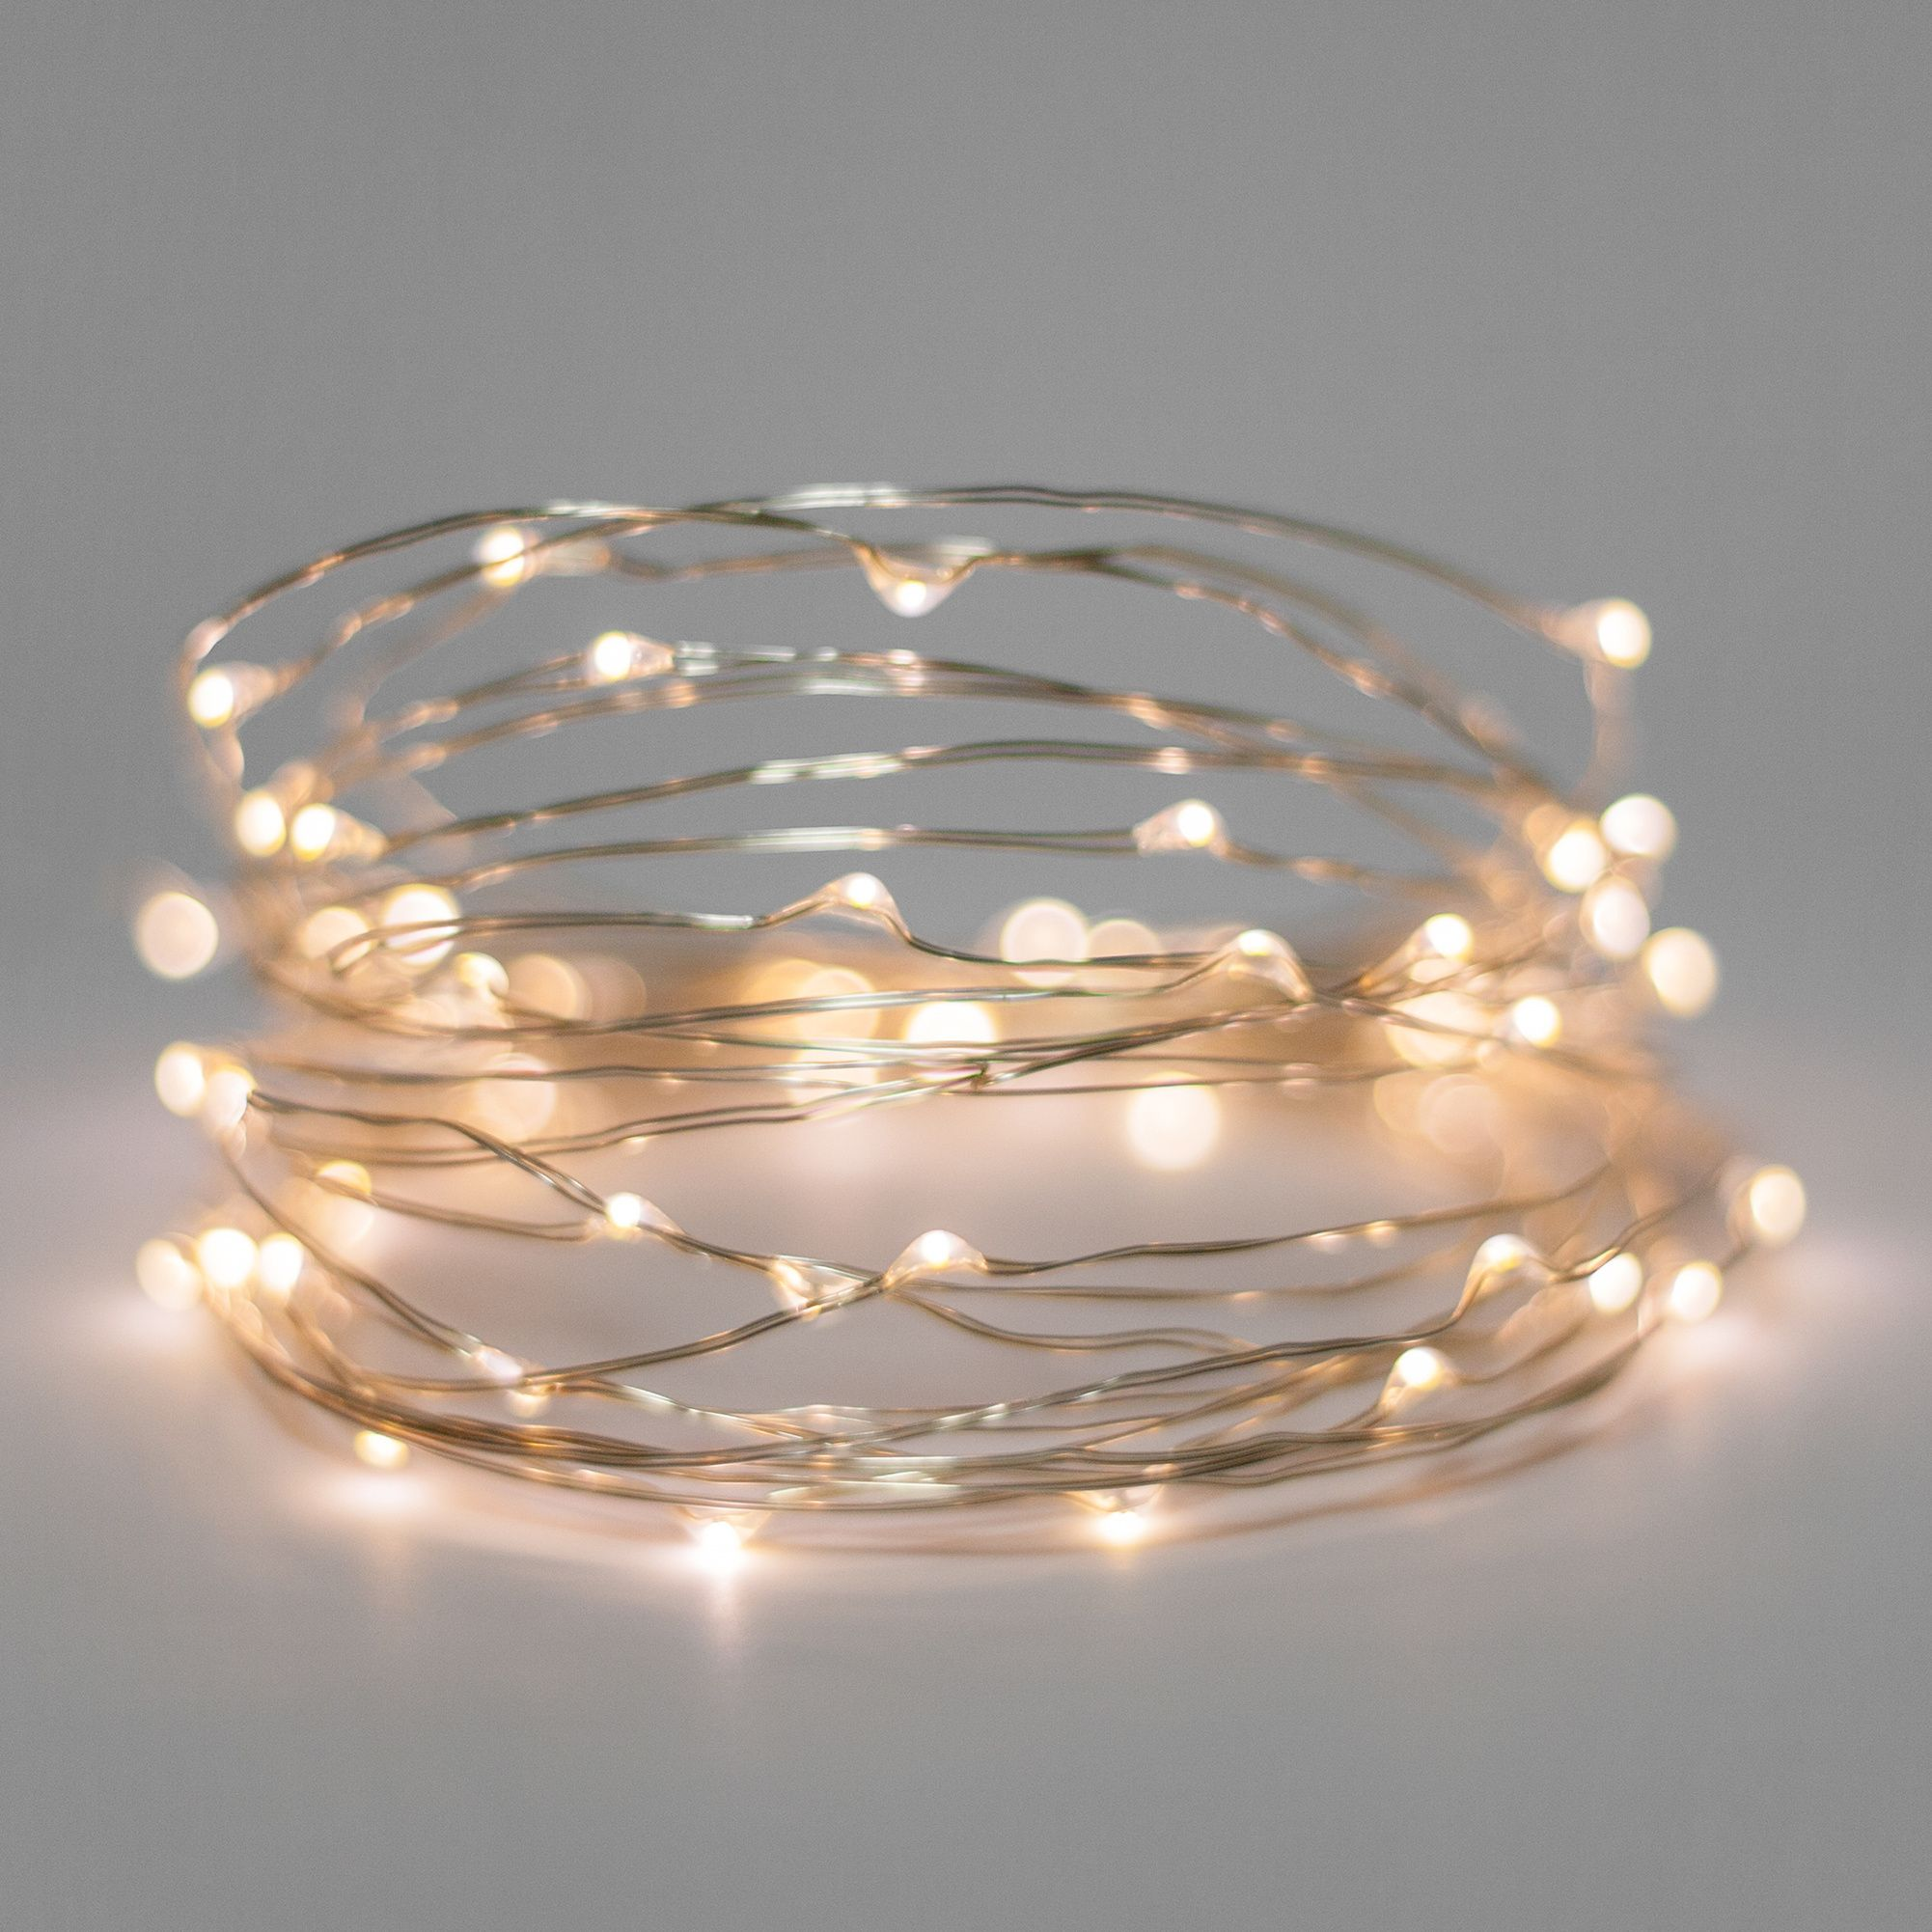 30 Warm White Battery Operated Led Fairy Lights Silver Wire Led Fairy Lights Fairy Lights Wire Fairy Lights